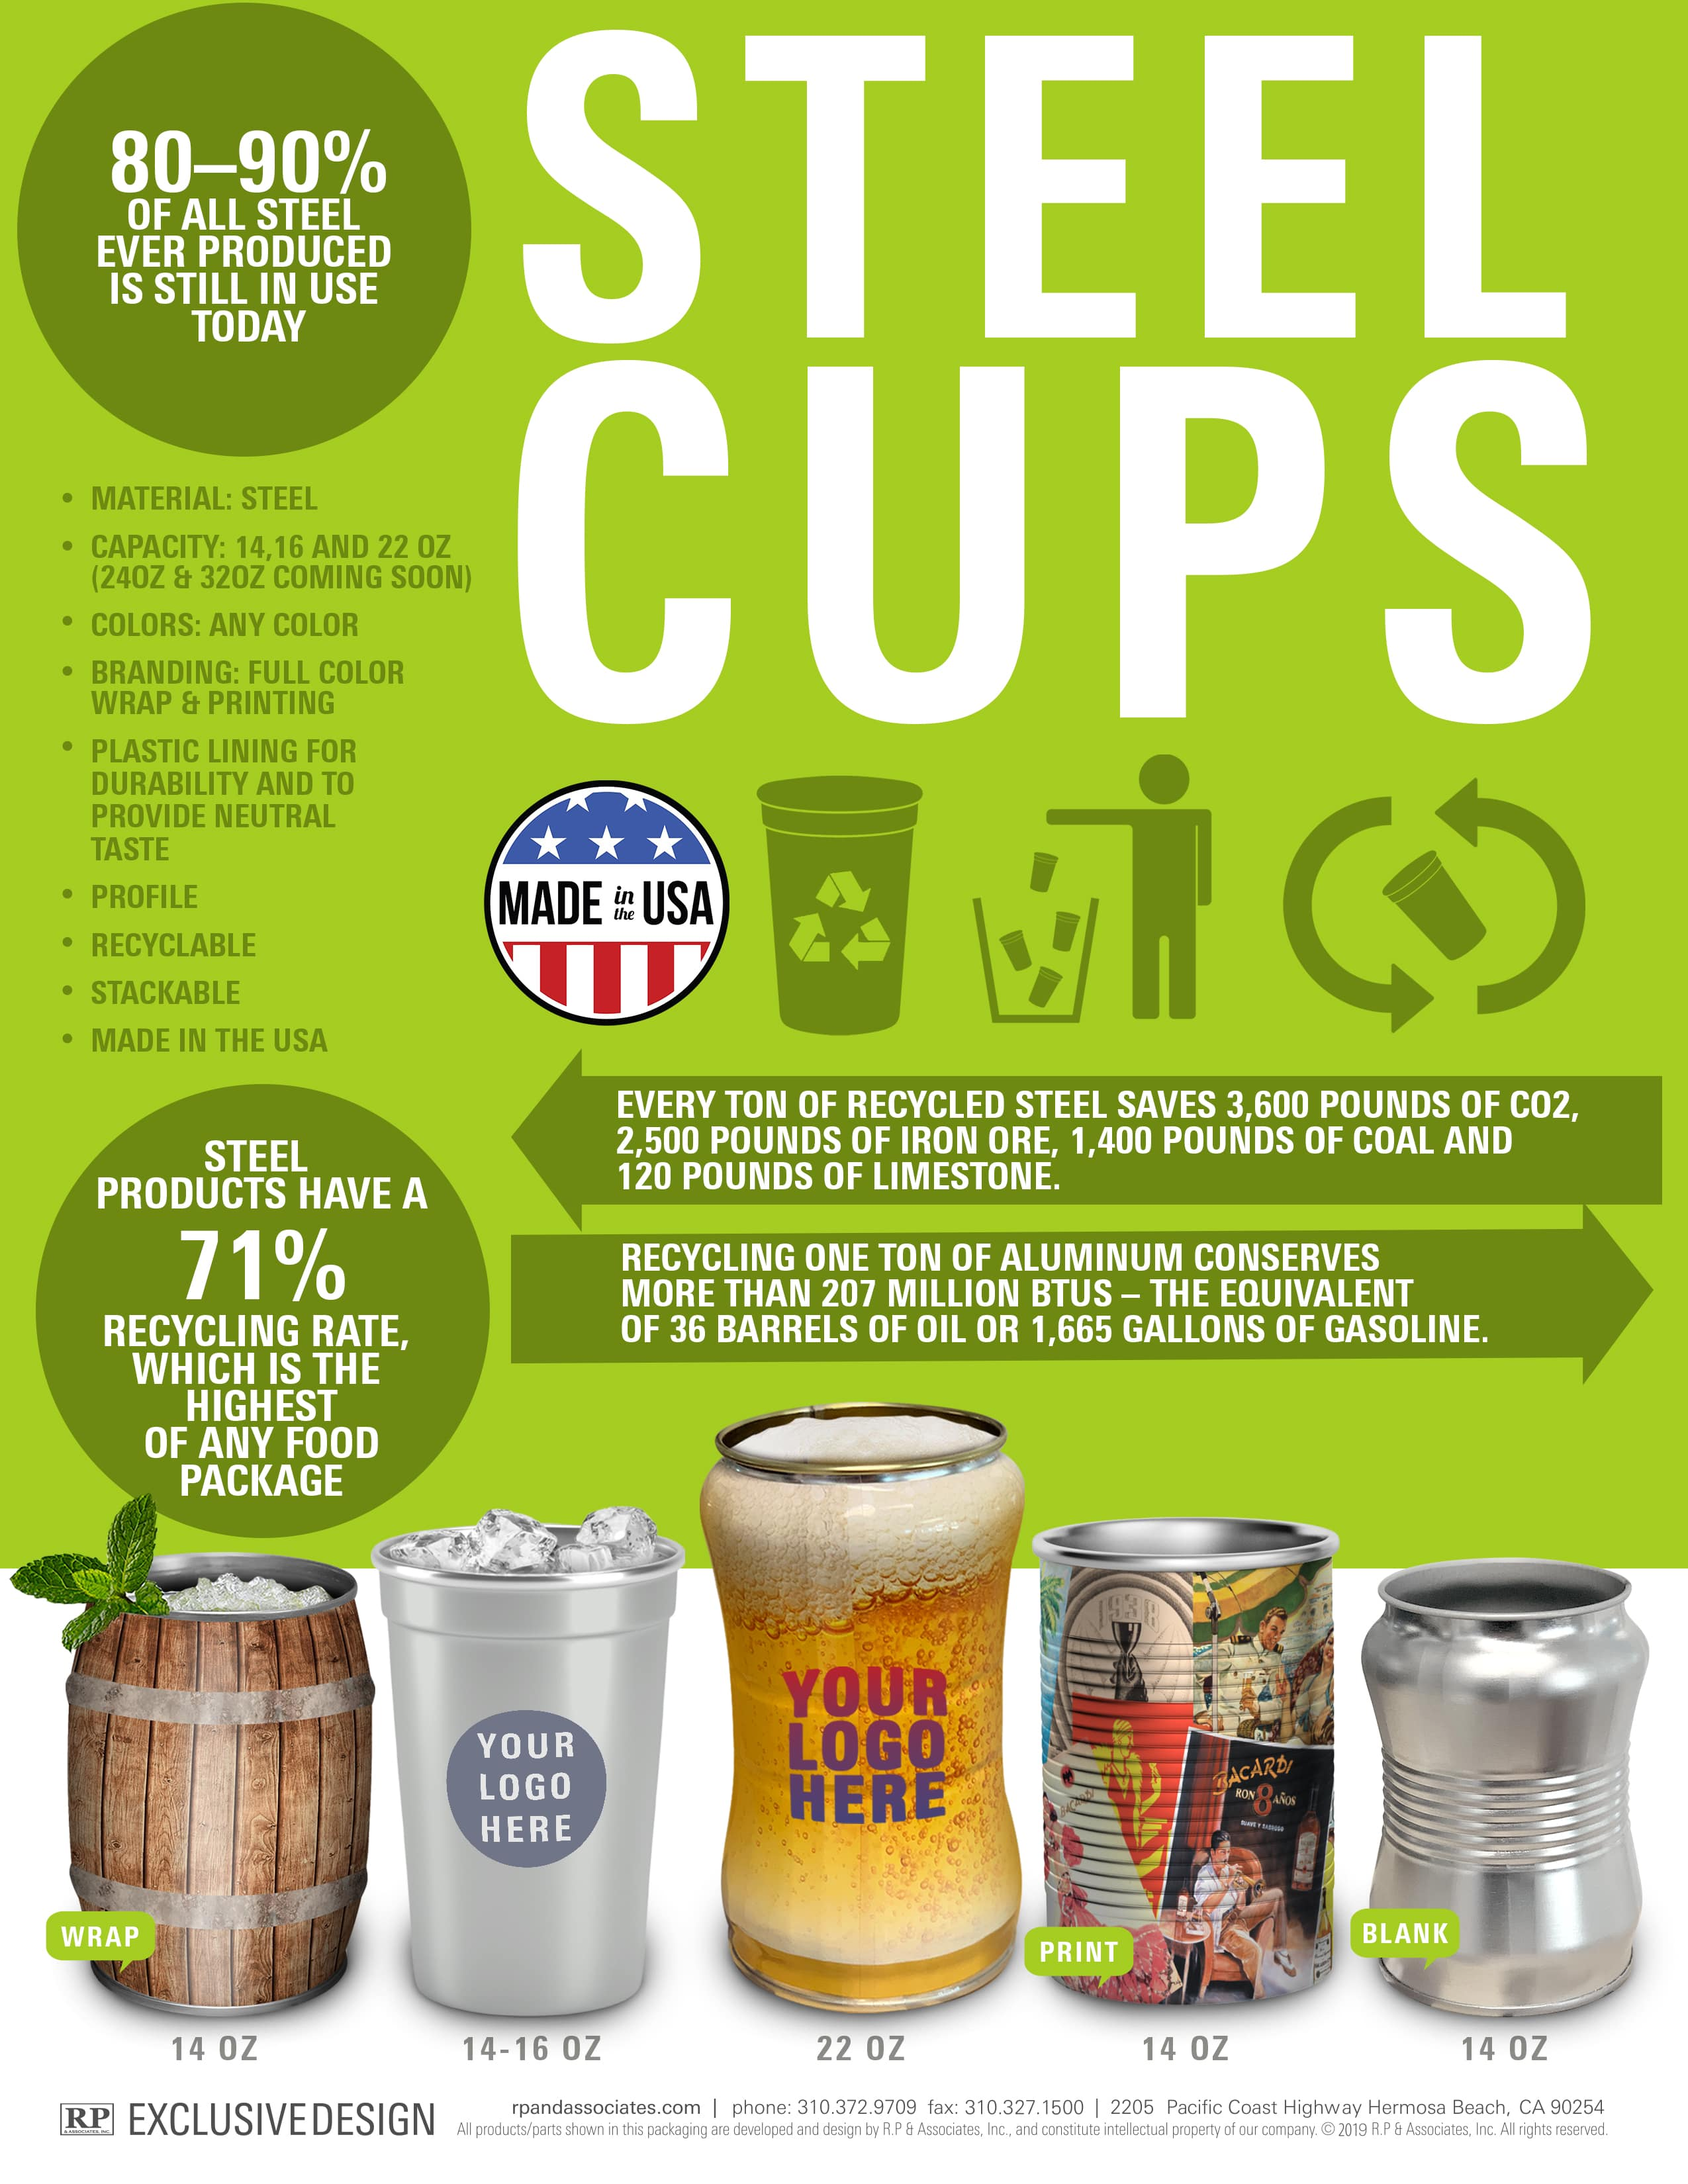 steel cups sustainable